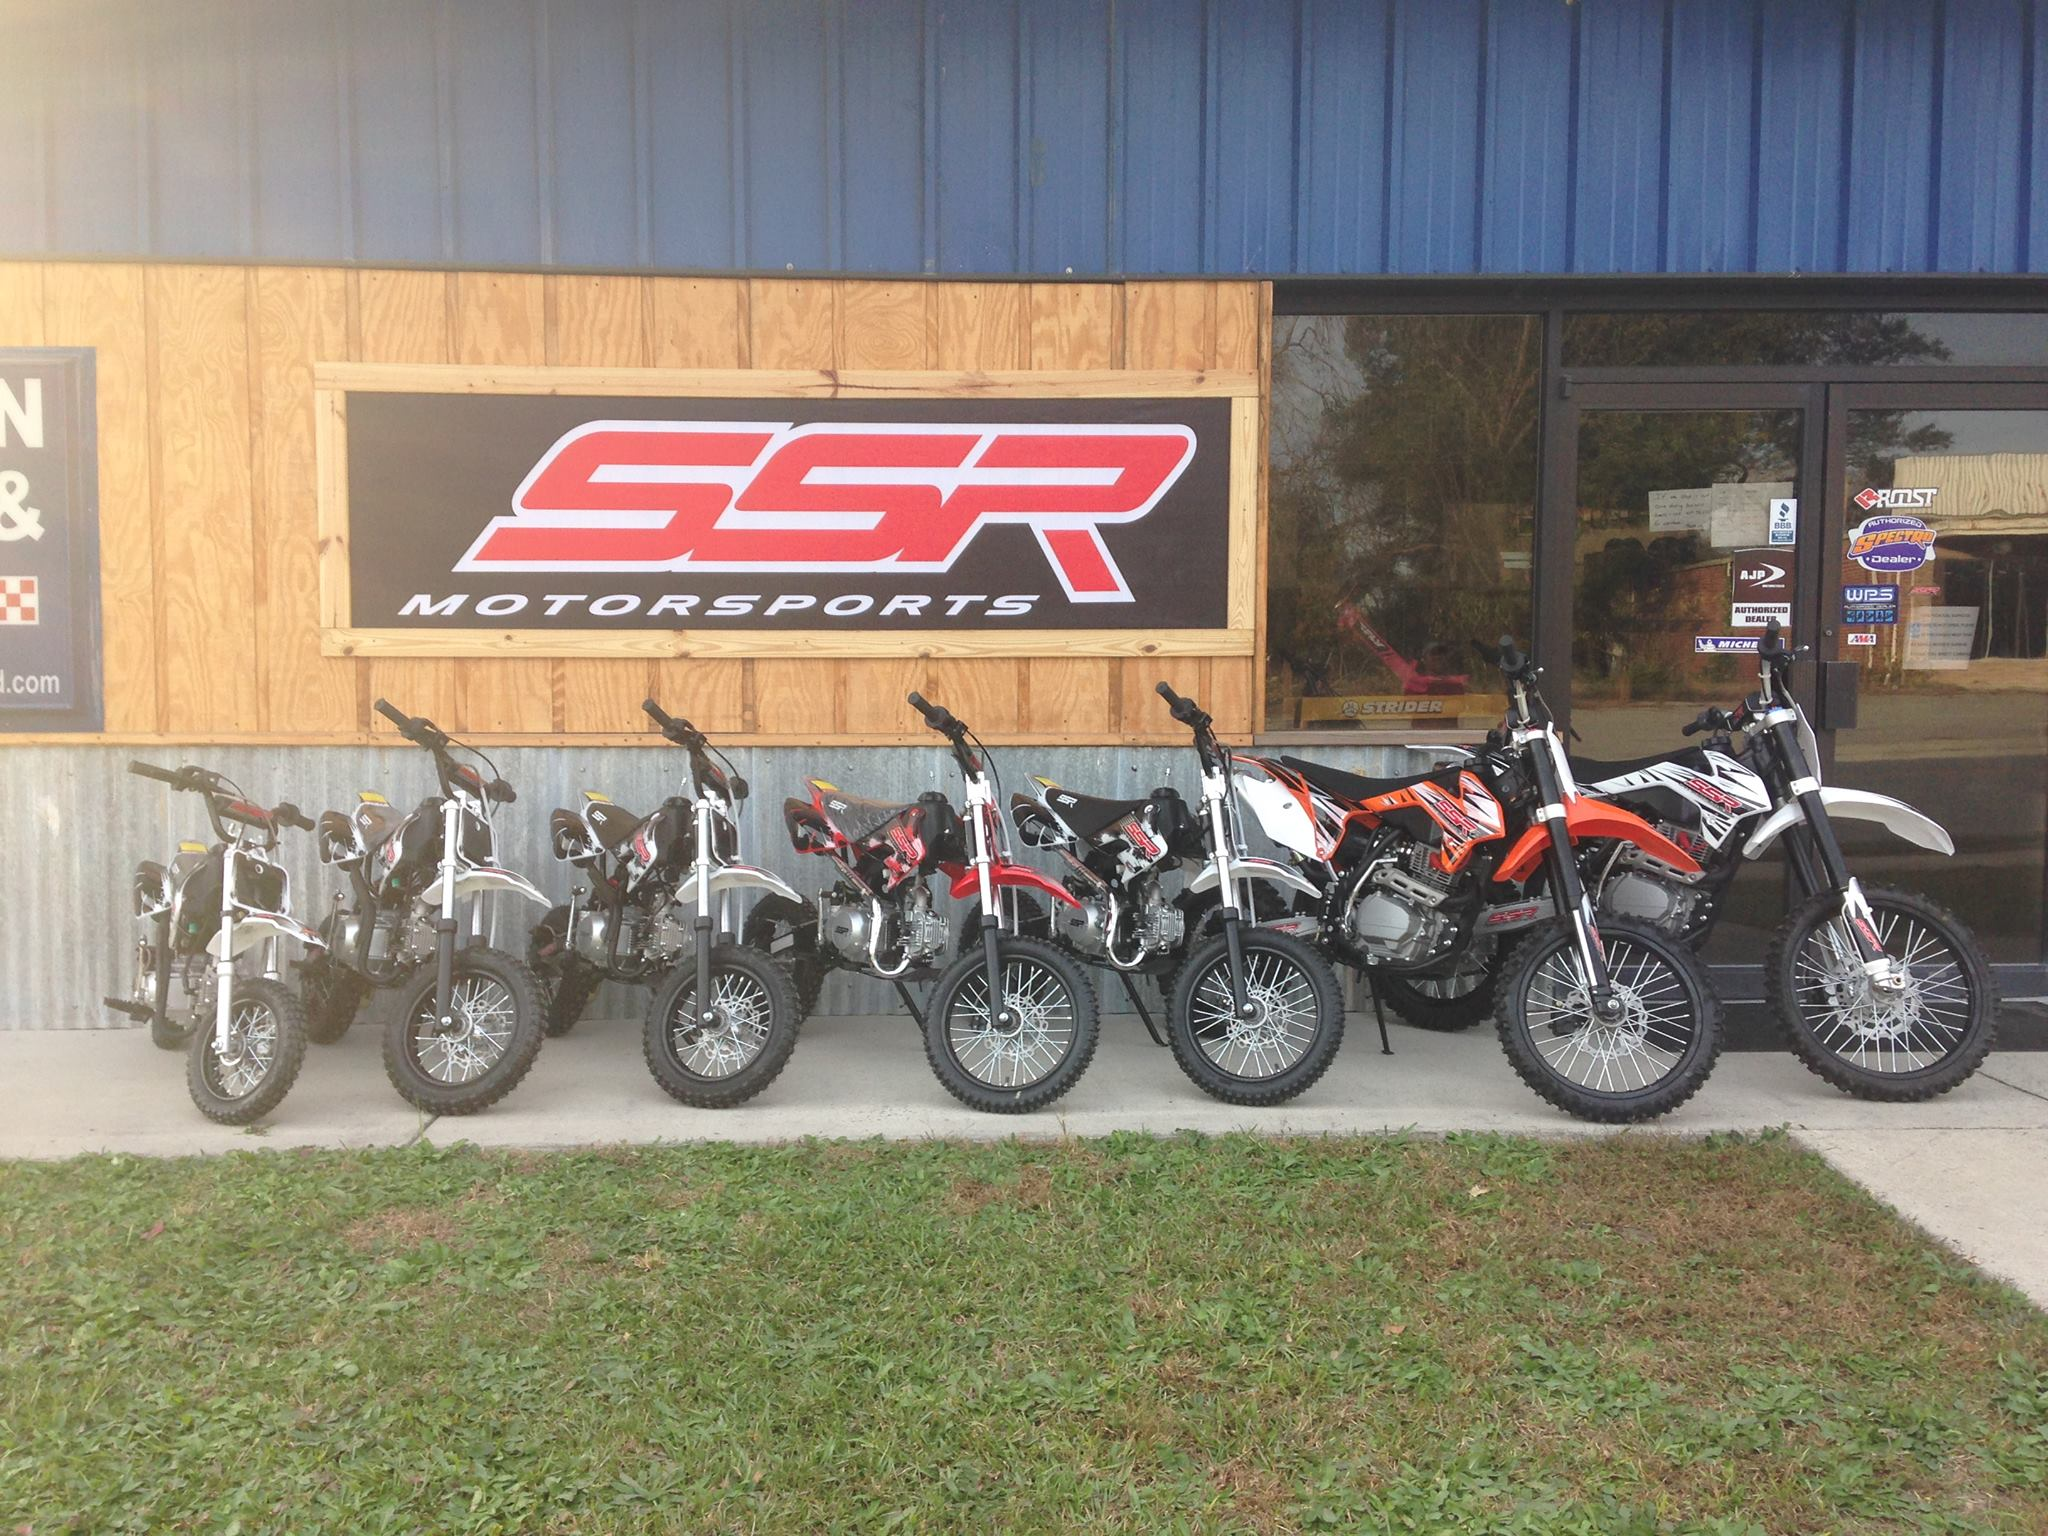 ajp georgia with AJP dirt bikes, Benelli ssr motorcycles, mini bikes and dual sports and ODES utility vehicles